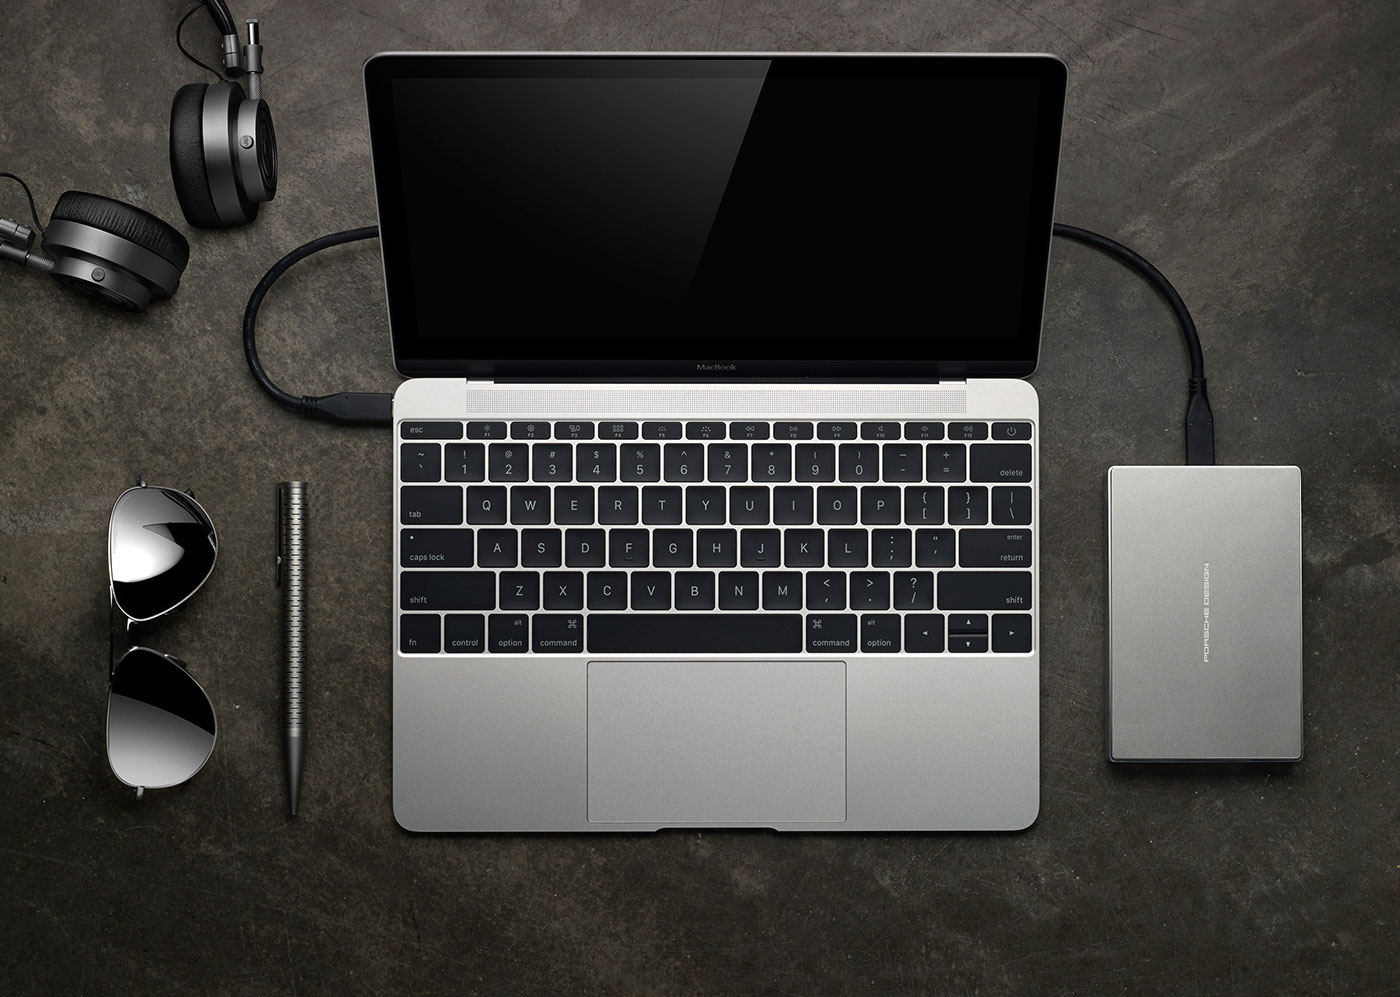 LaCie's latest hard drives offer extra space via USB-C